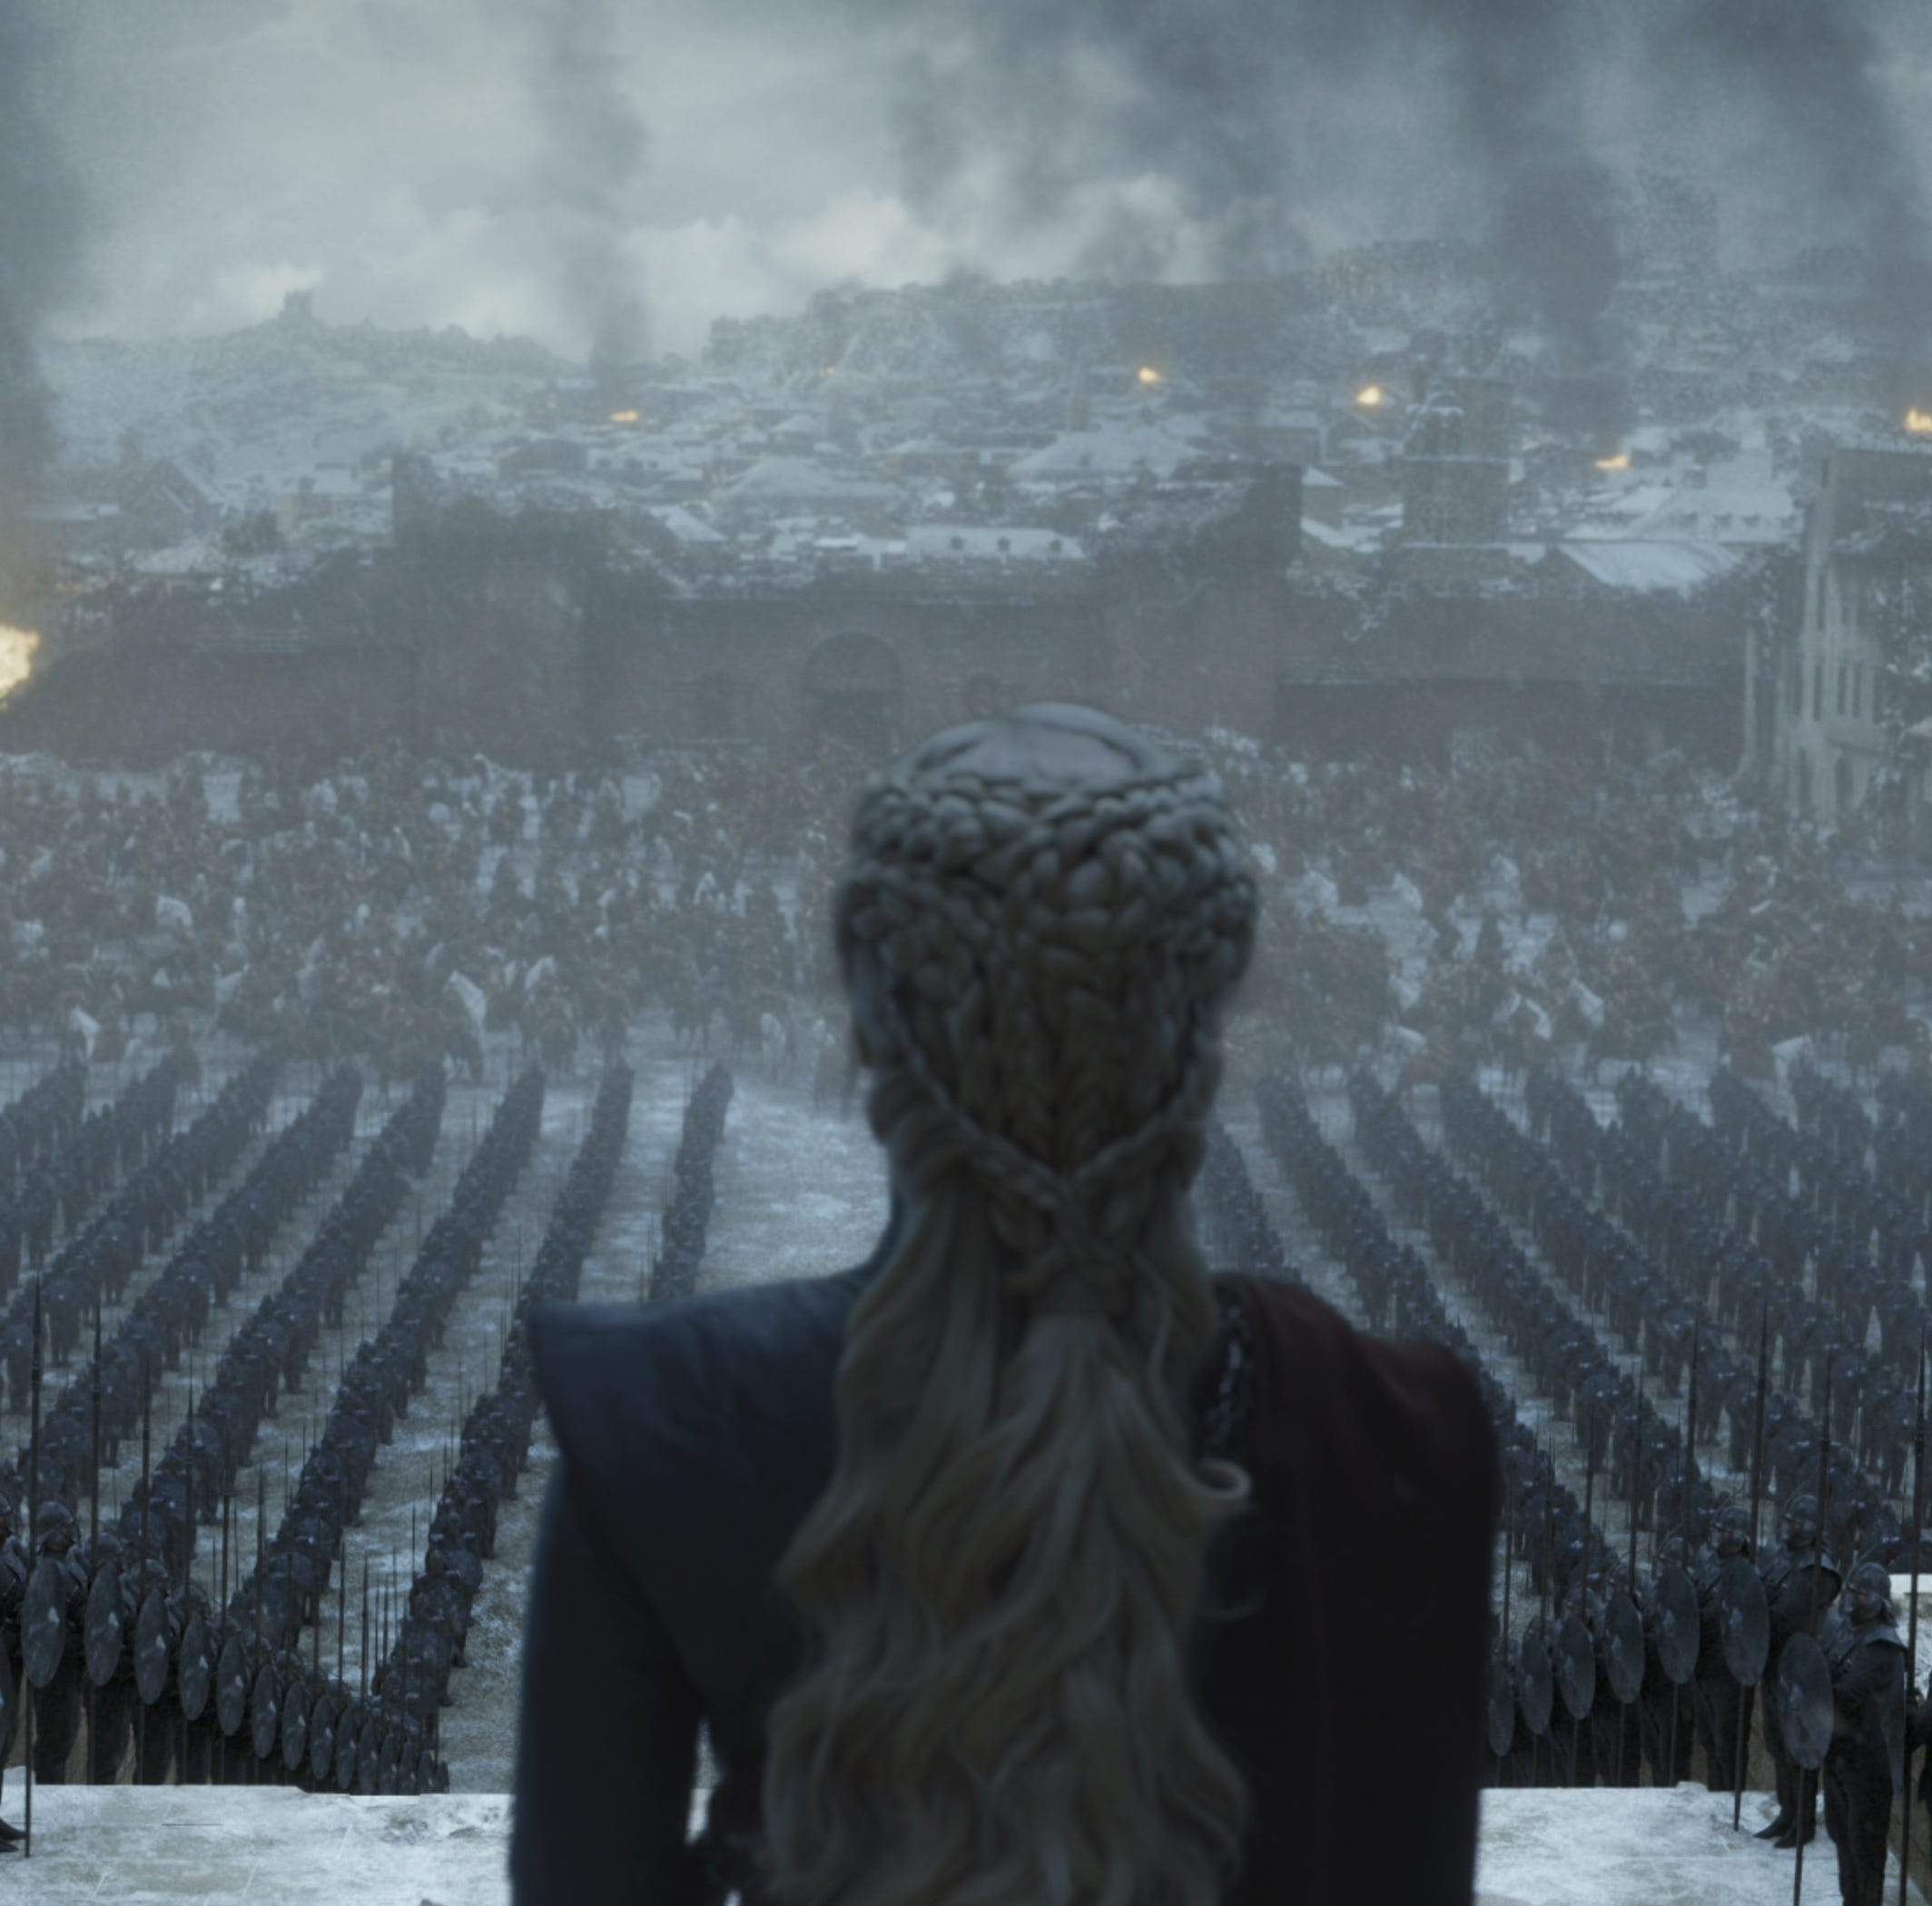 'Game of Thrones' finale is over and it was ... meh